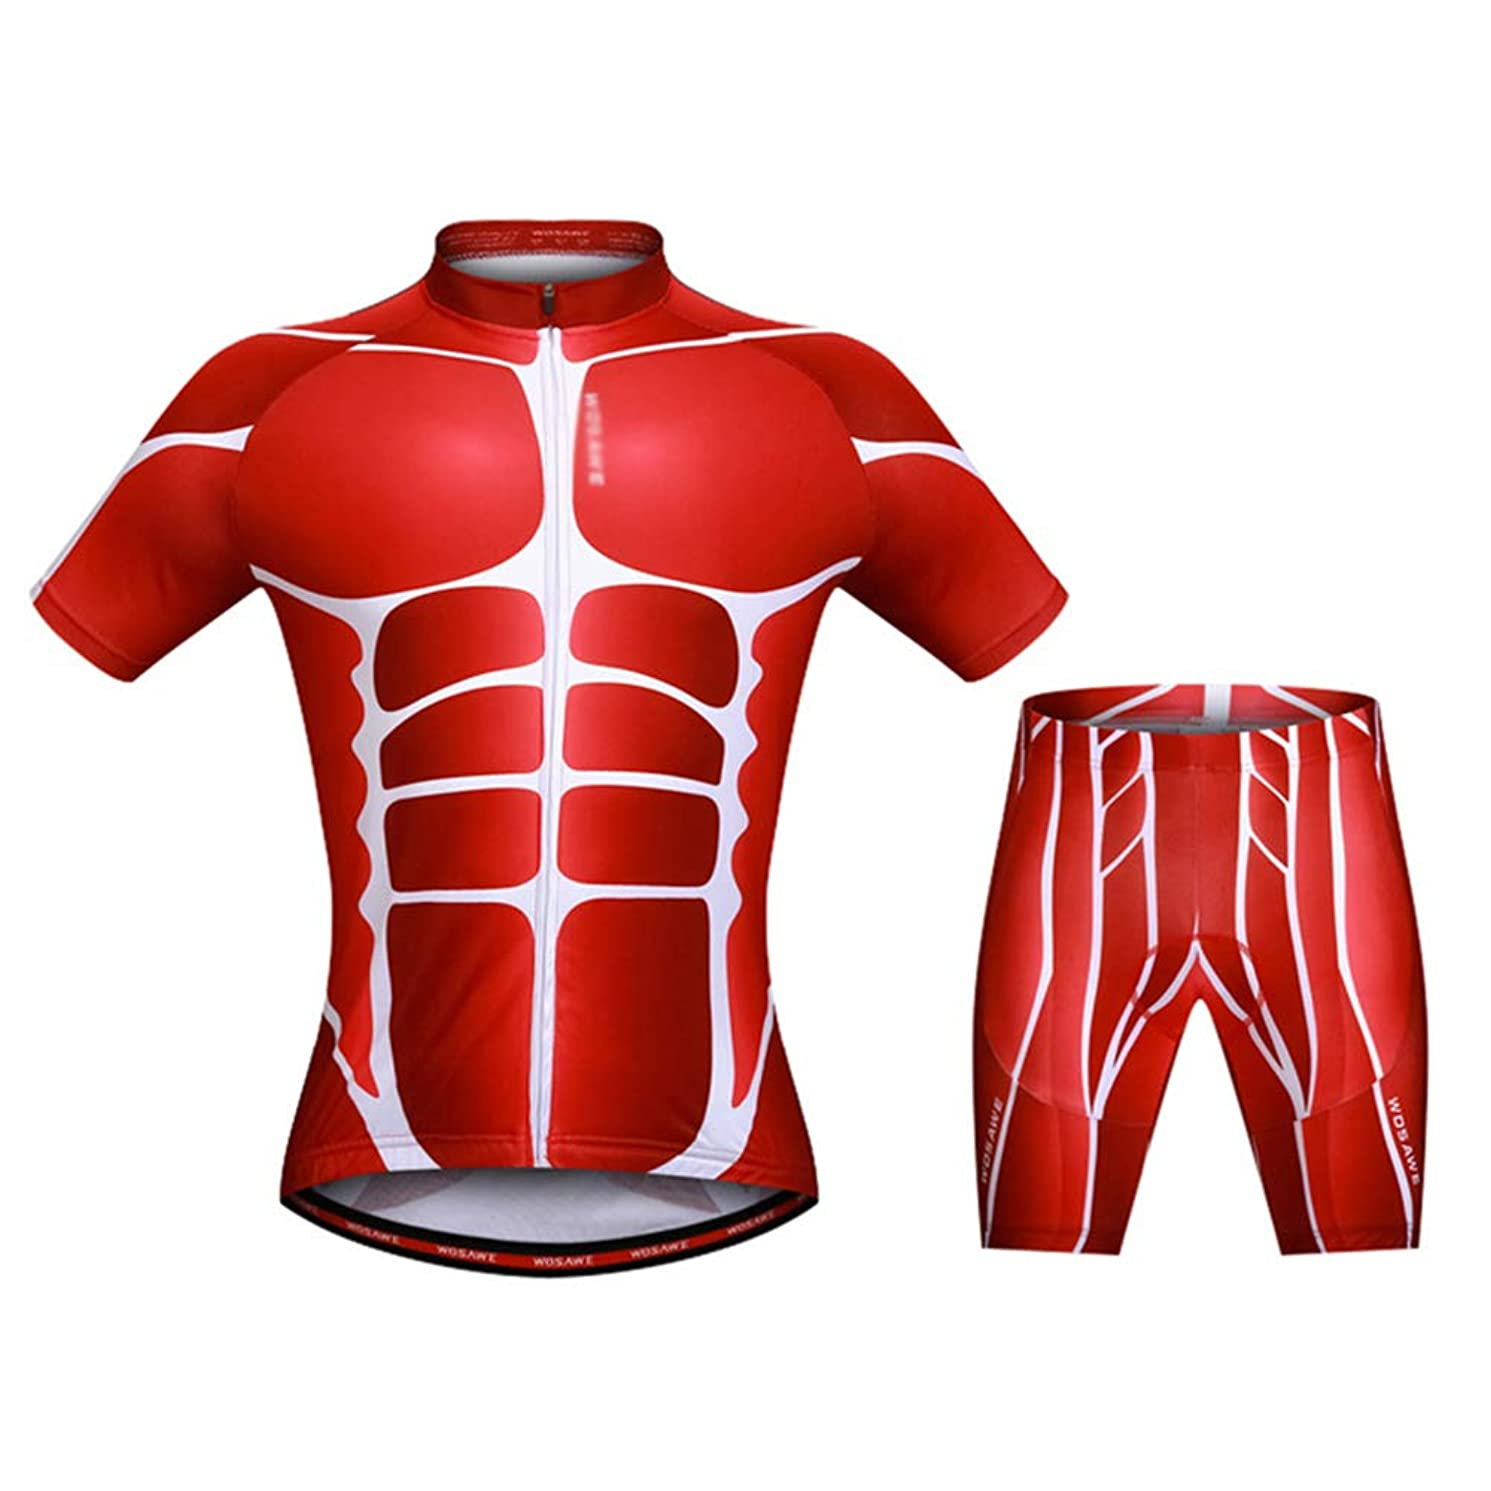 LSJZS Men's Cycling Suit Breathable Set Comfortable Quick Dry Men Short Sleeve Jersey + Padded Shorts Riding Sportswear